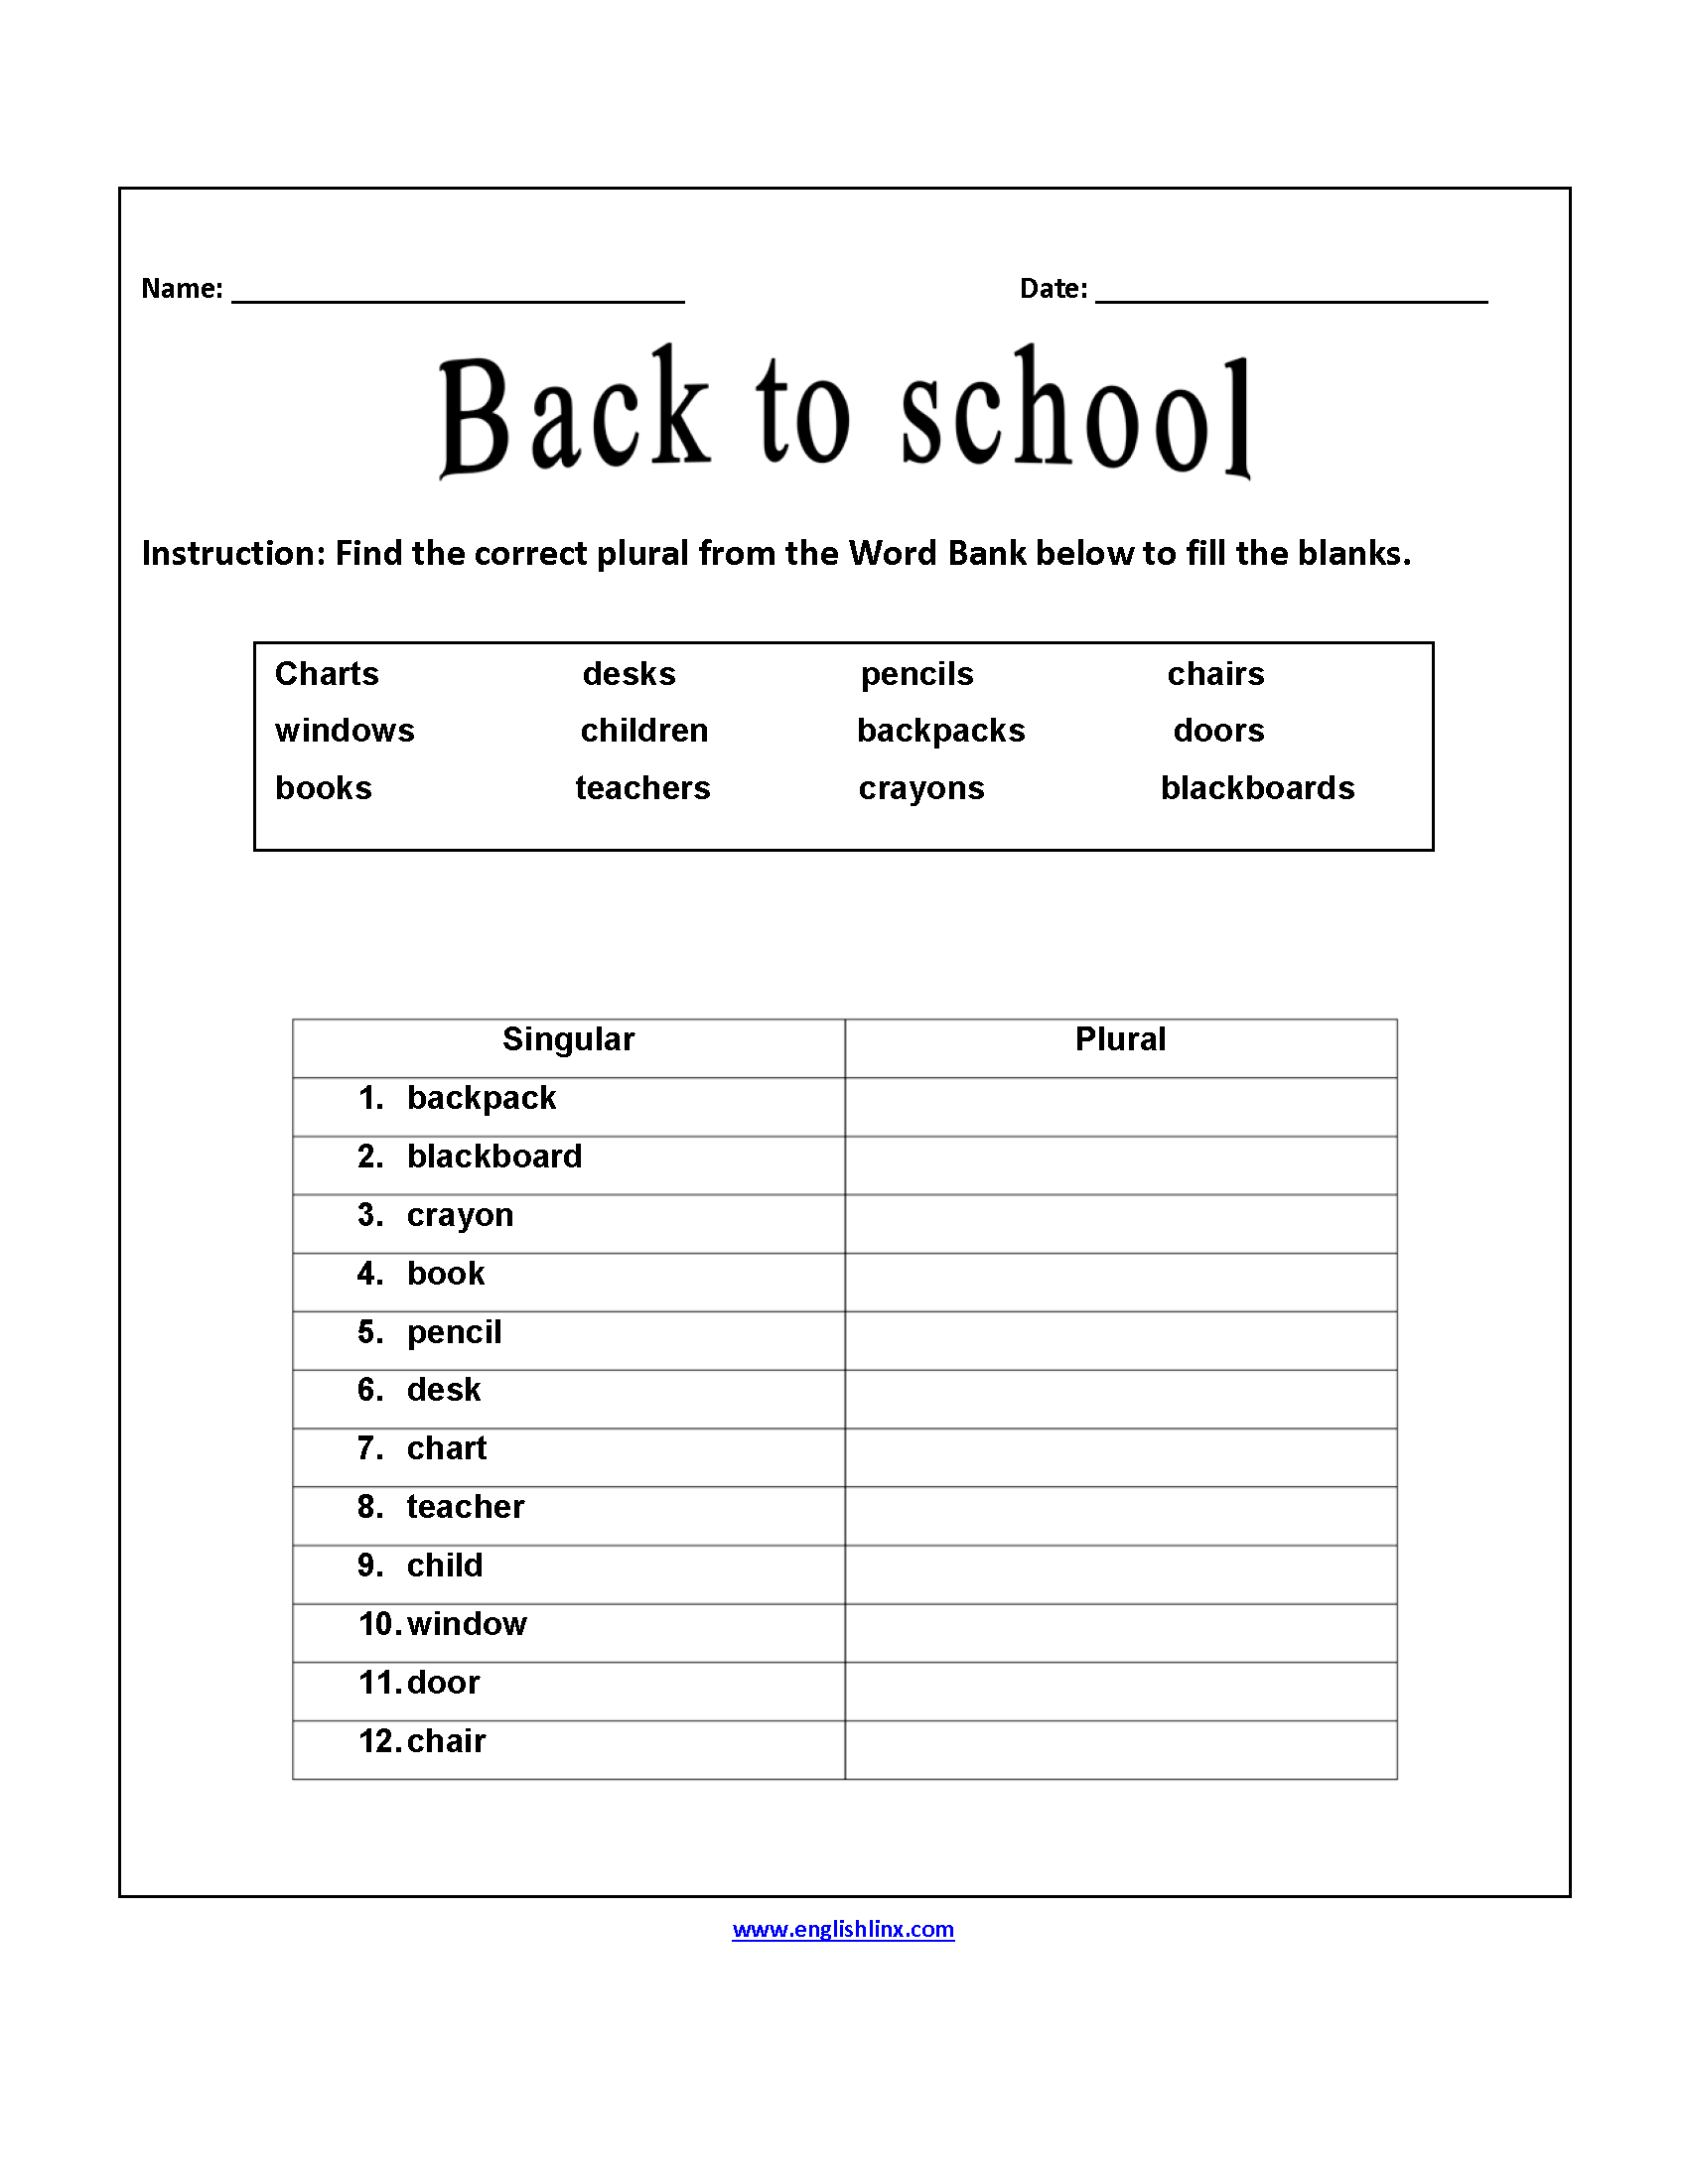 photograph about Back to School Printable Worksheets identify Back again in the direction of University Worksheets Suitable Plurals Back again toward Faculty